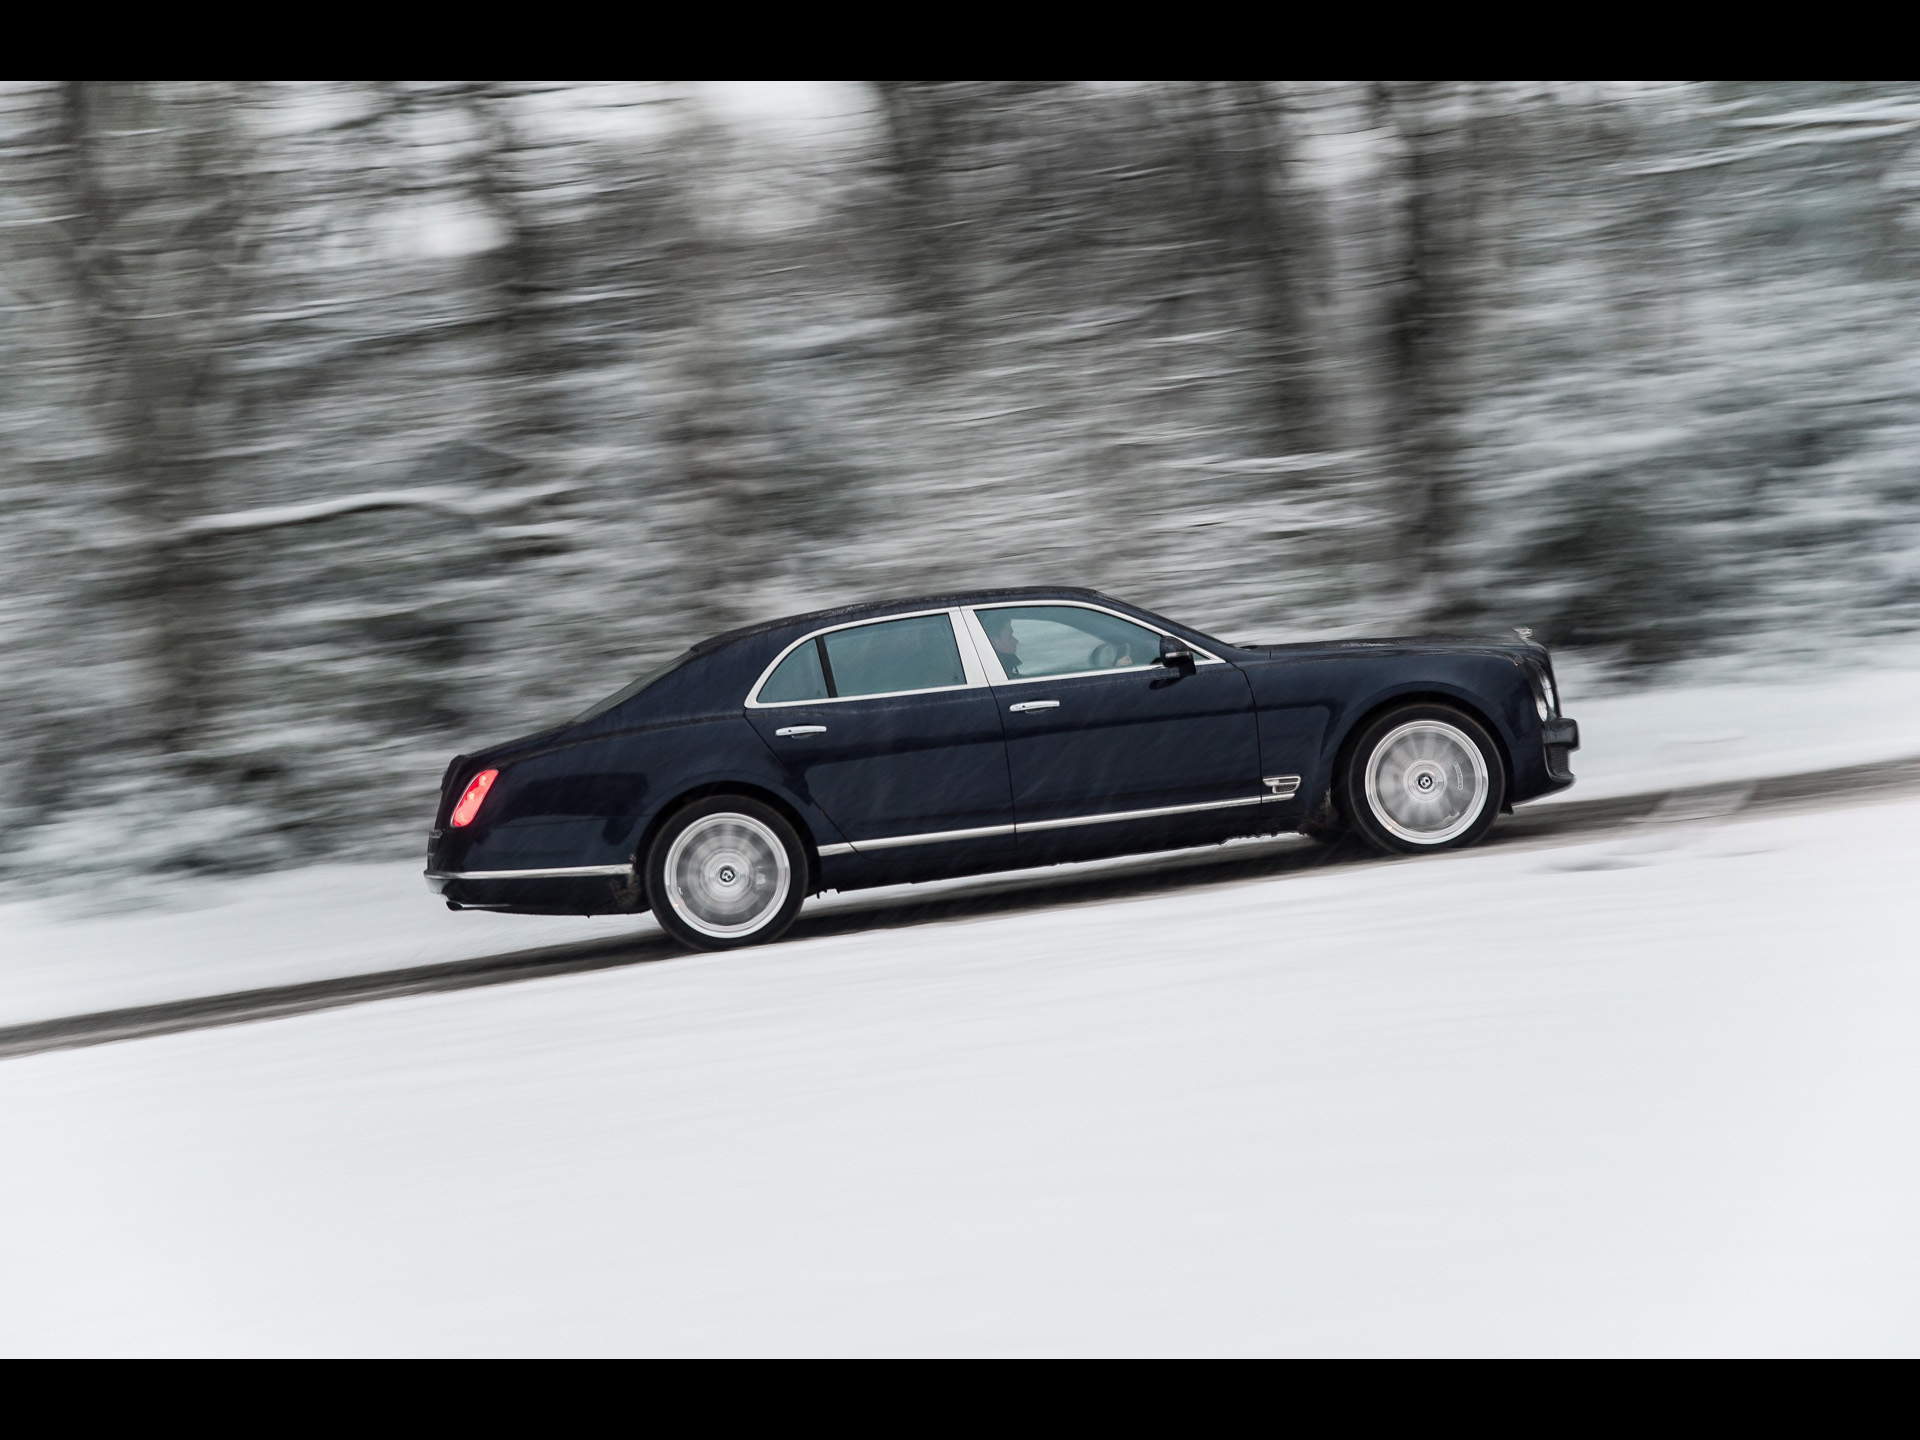 click to free download the wallpaper--Graceful Cars Image of Bentley Mulsanne, on a Snowy Slope, Trees Sweeping Past 1920X1440 free wallpaper download